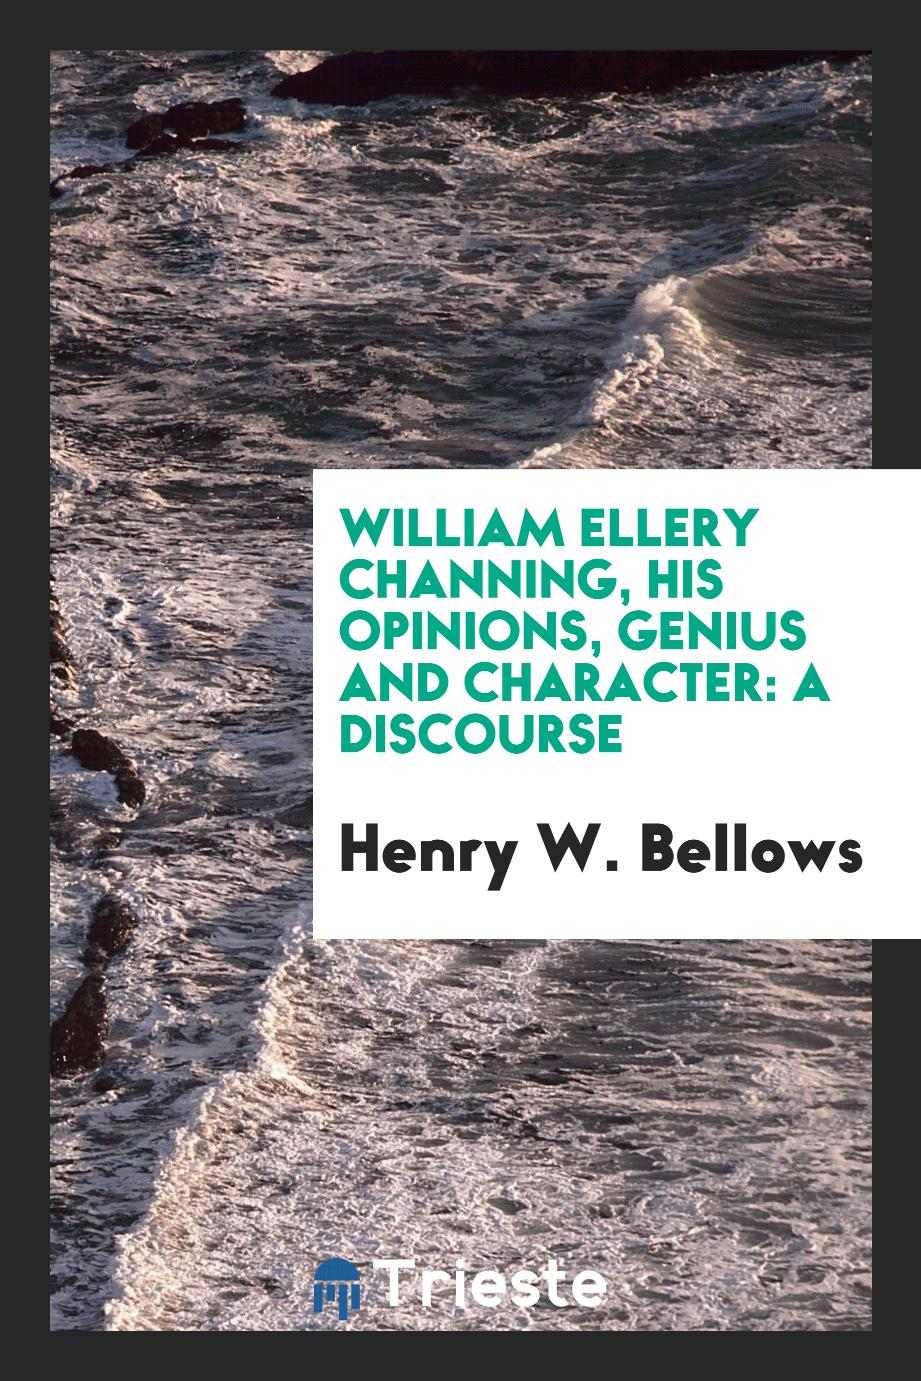 William Ellery Channing, his opinions, genius and character: a discourse